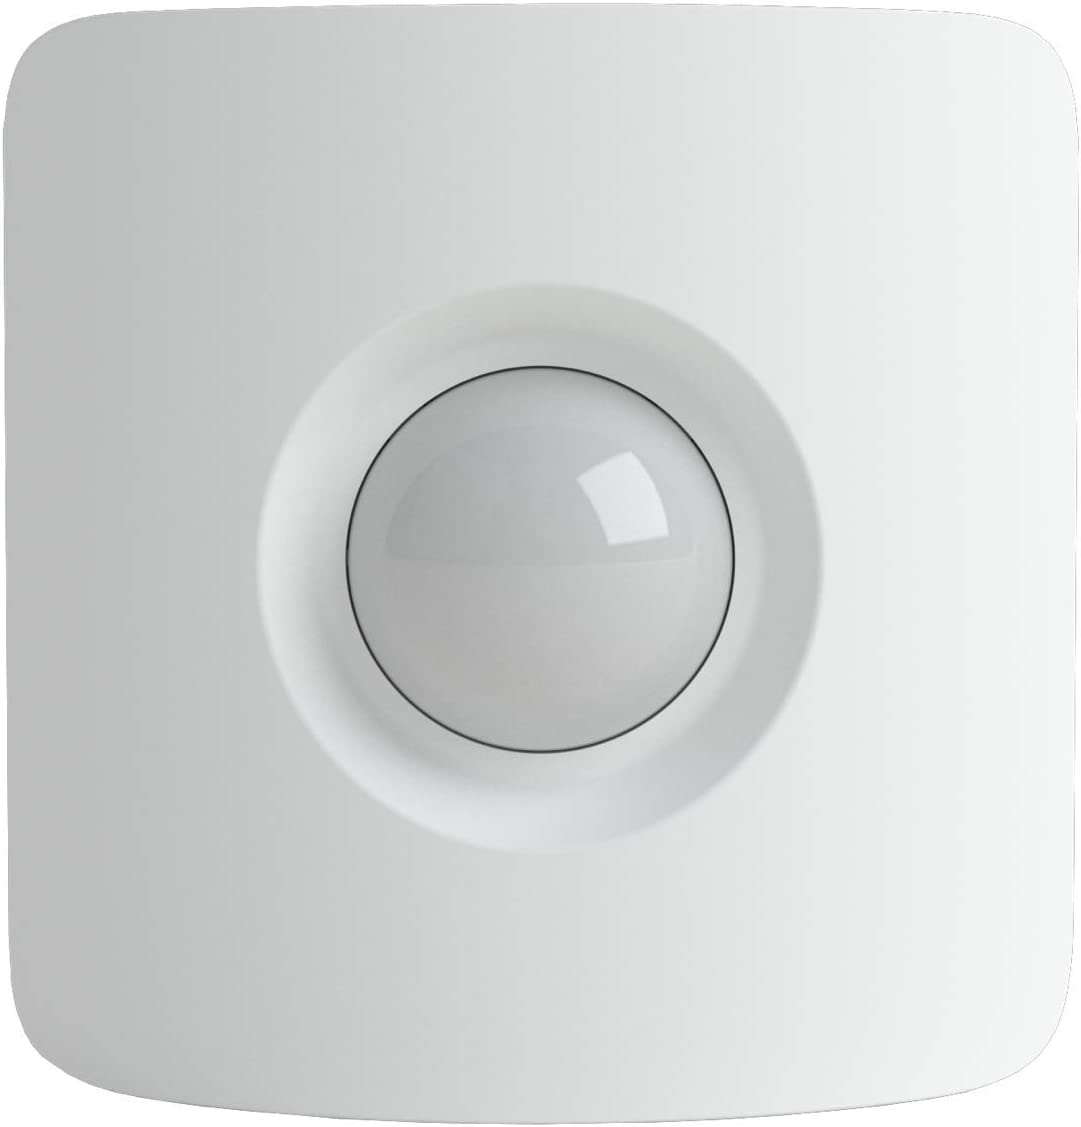 SimpliSafe Motion Sensor - 45ft. Range - Infrared Heat Signature Technology - Compatible with The Home Security System (New Gen)